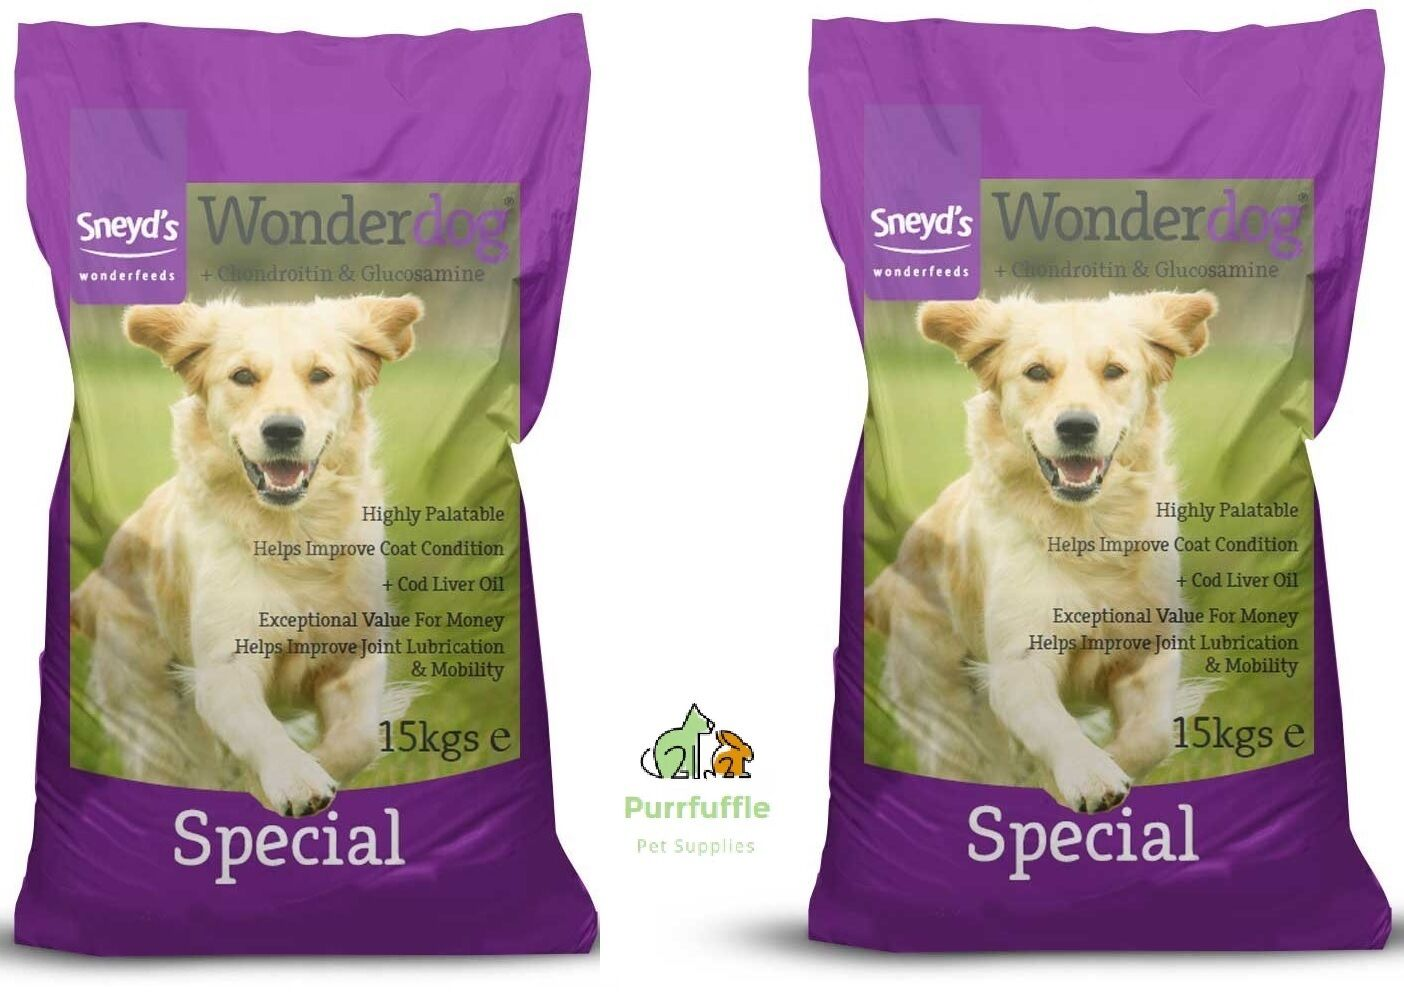 2x 15KG BAGS SNEYDS WONDERDOG SPECIAL DOG FOOD - COD LIVER OIL FOR JOINTS 30KG